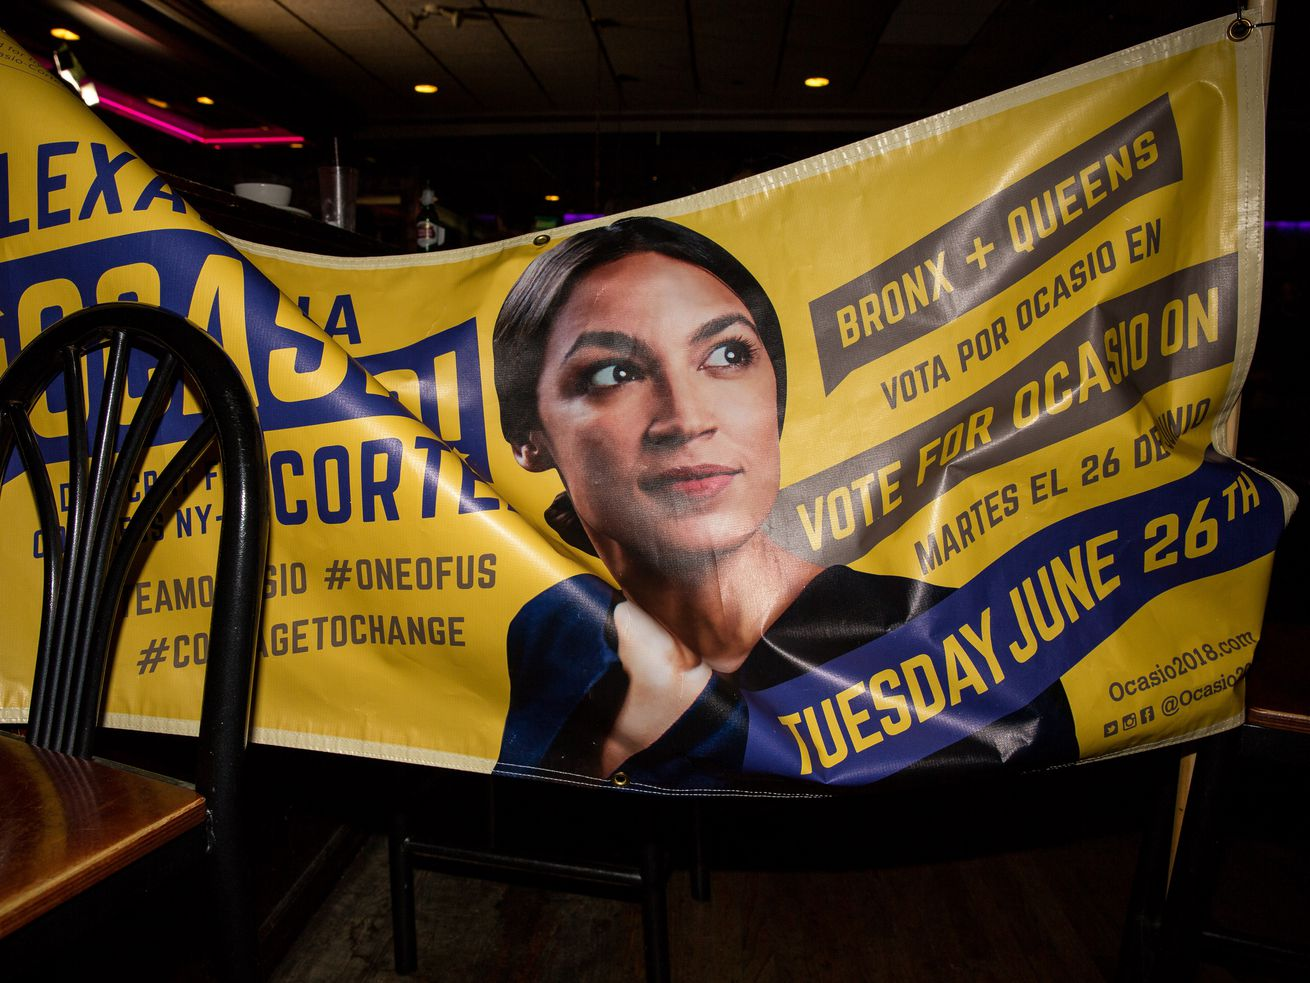 Another unexpected victory for Alexandria Ocasio-Cortez.